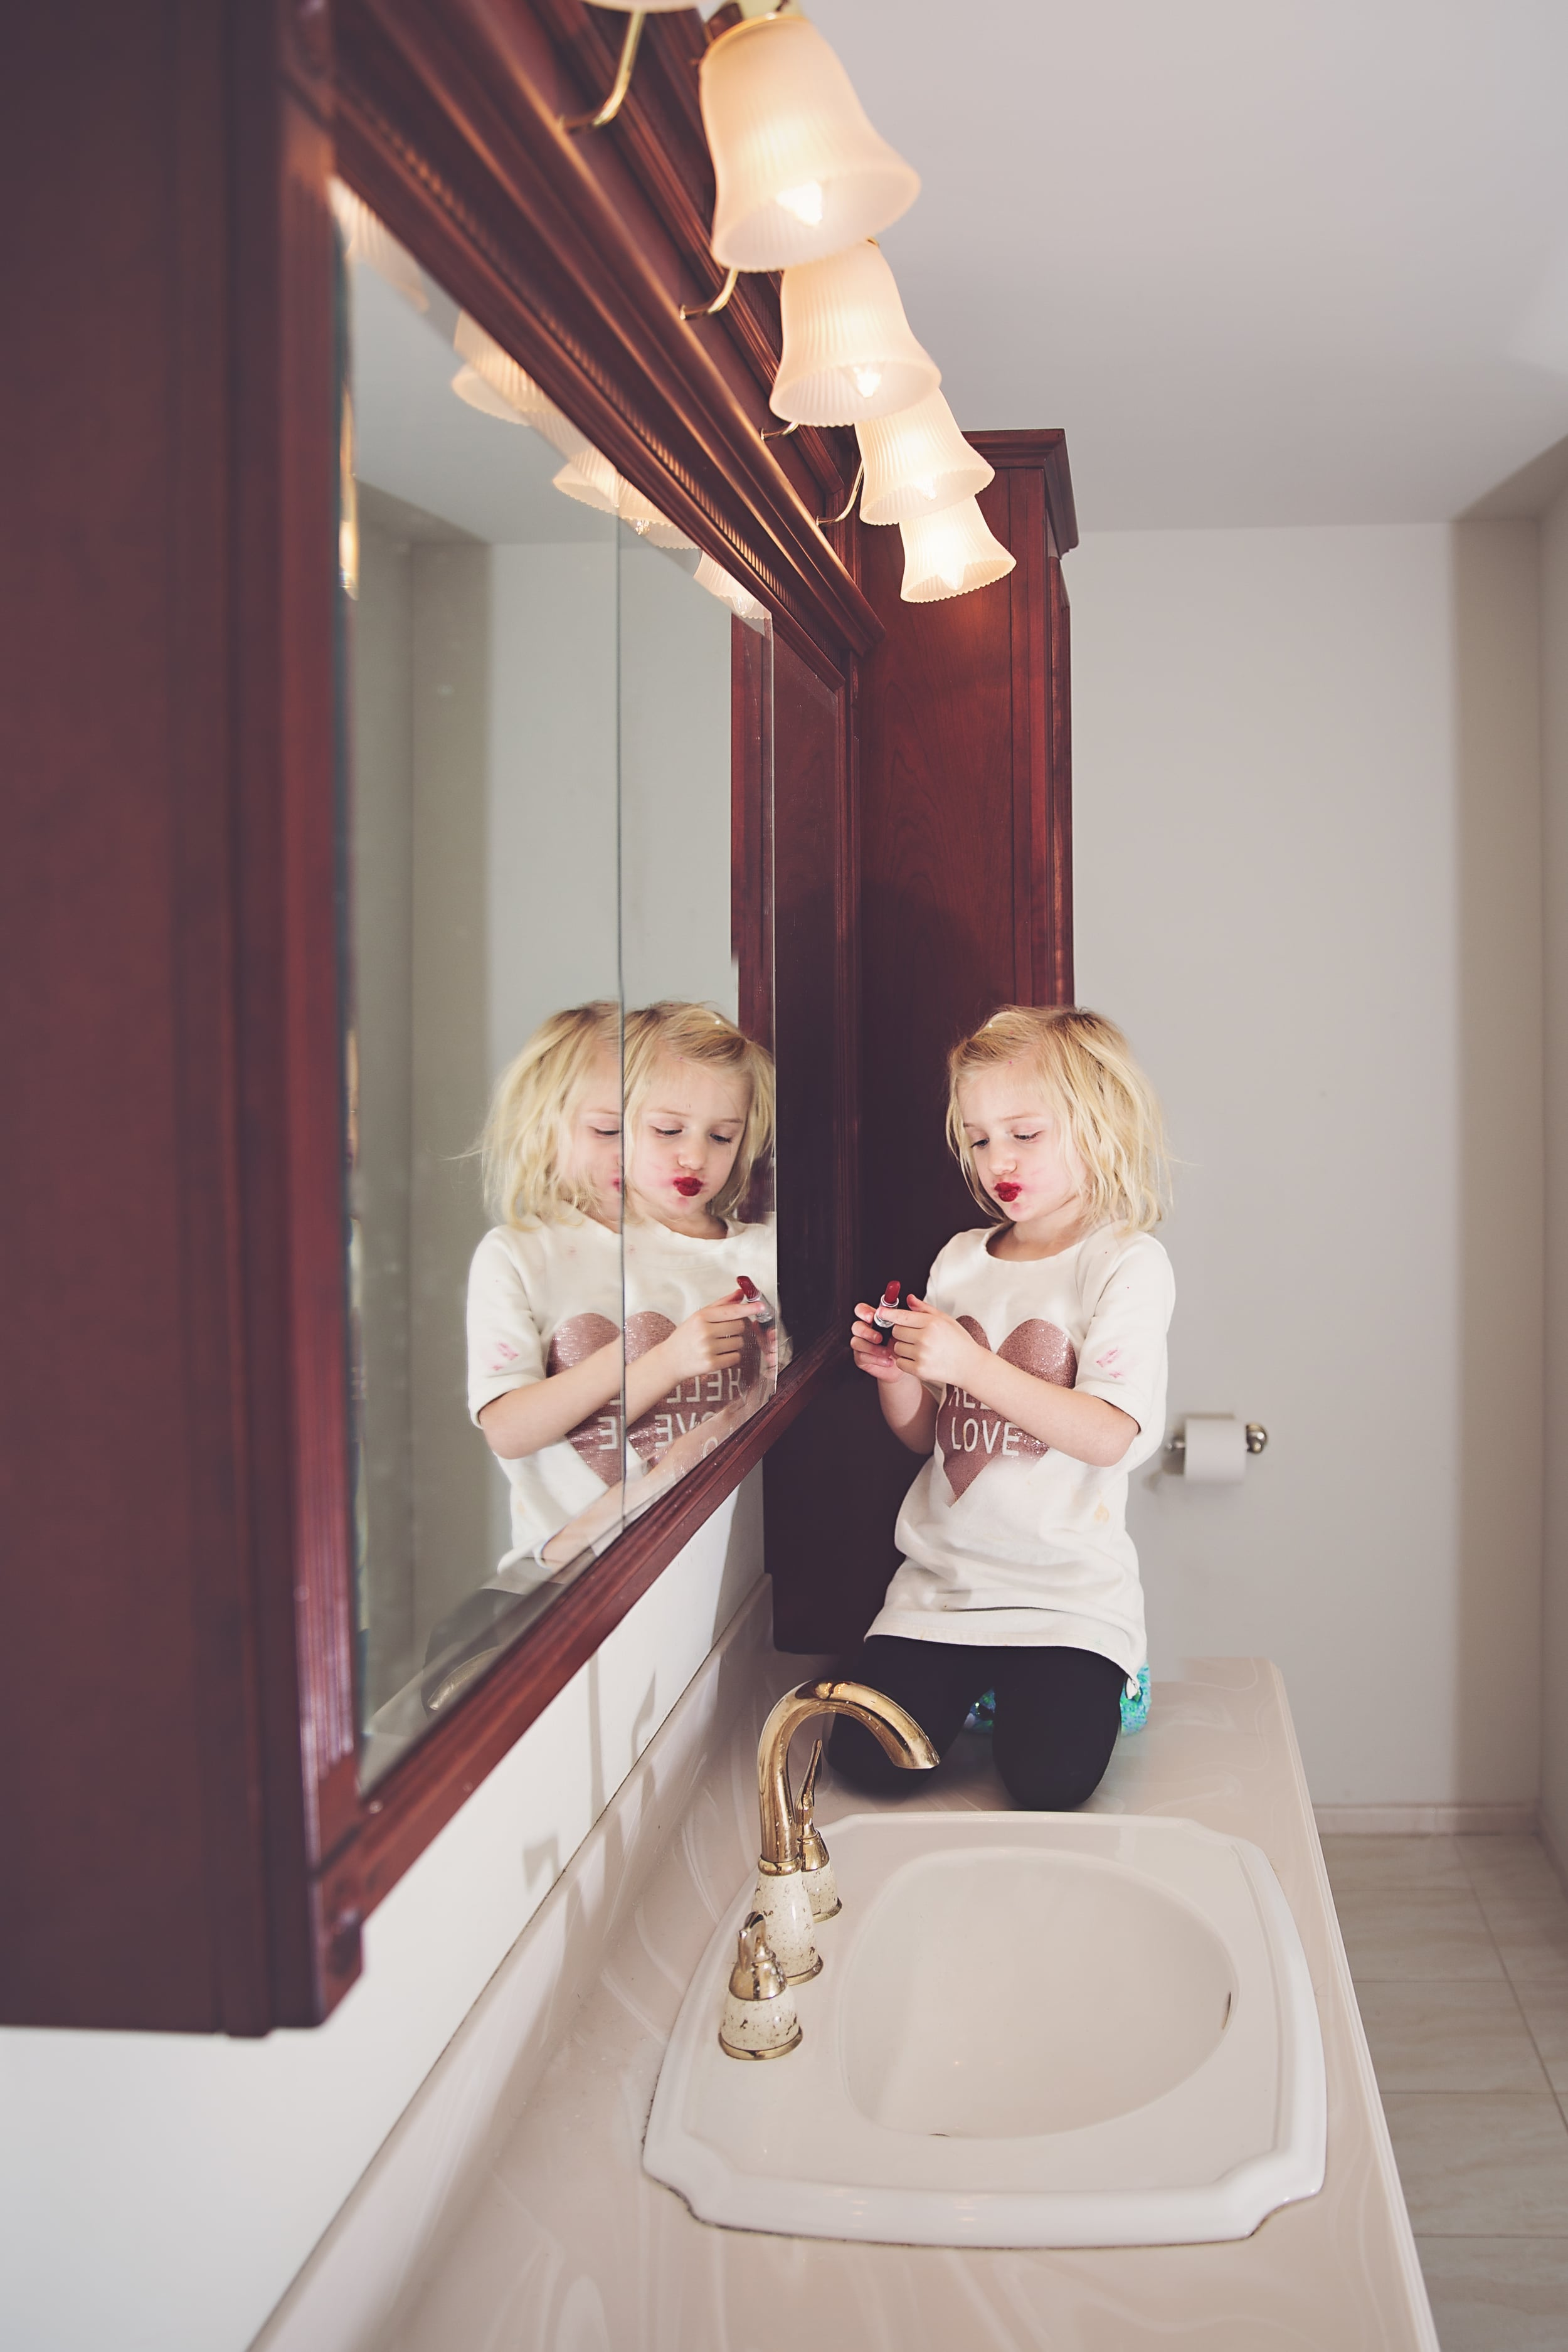 Hello-Olivia-Photography-suffolk-county lifestyle-childrens-photographer-red-lipstick-child-wearing-mom-make-up.jpg